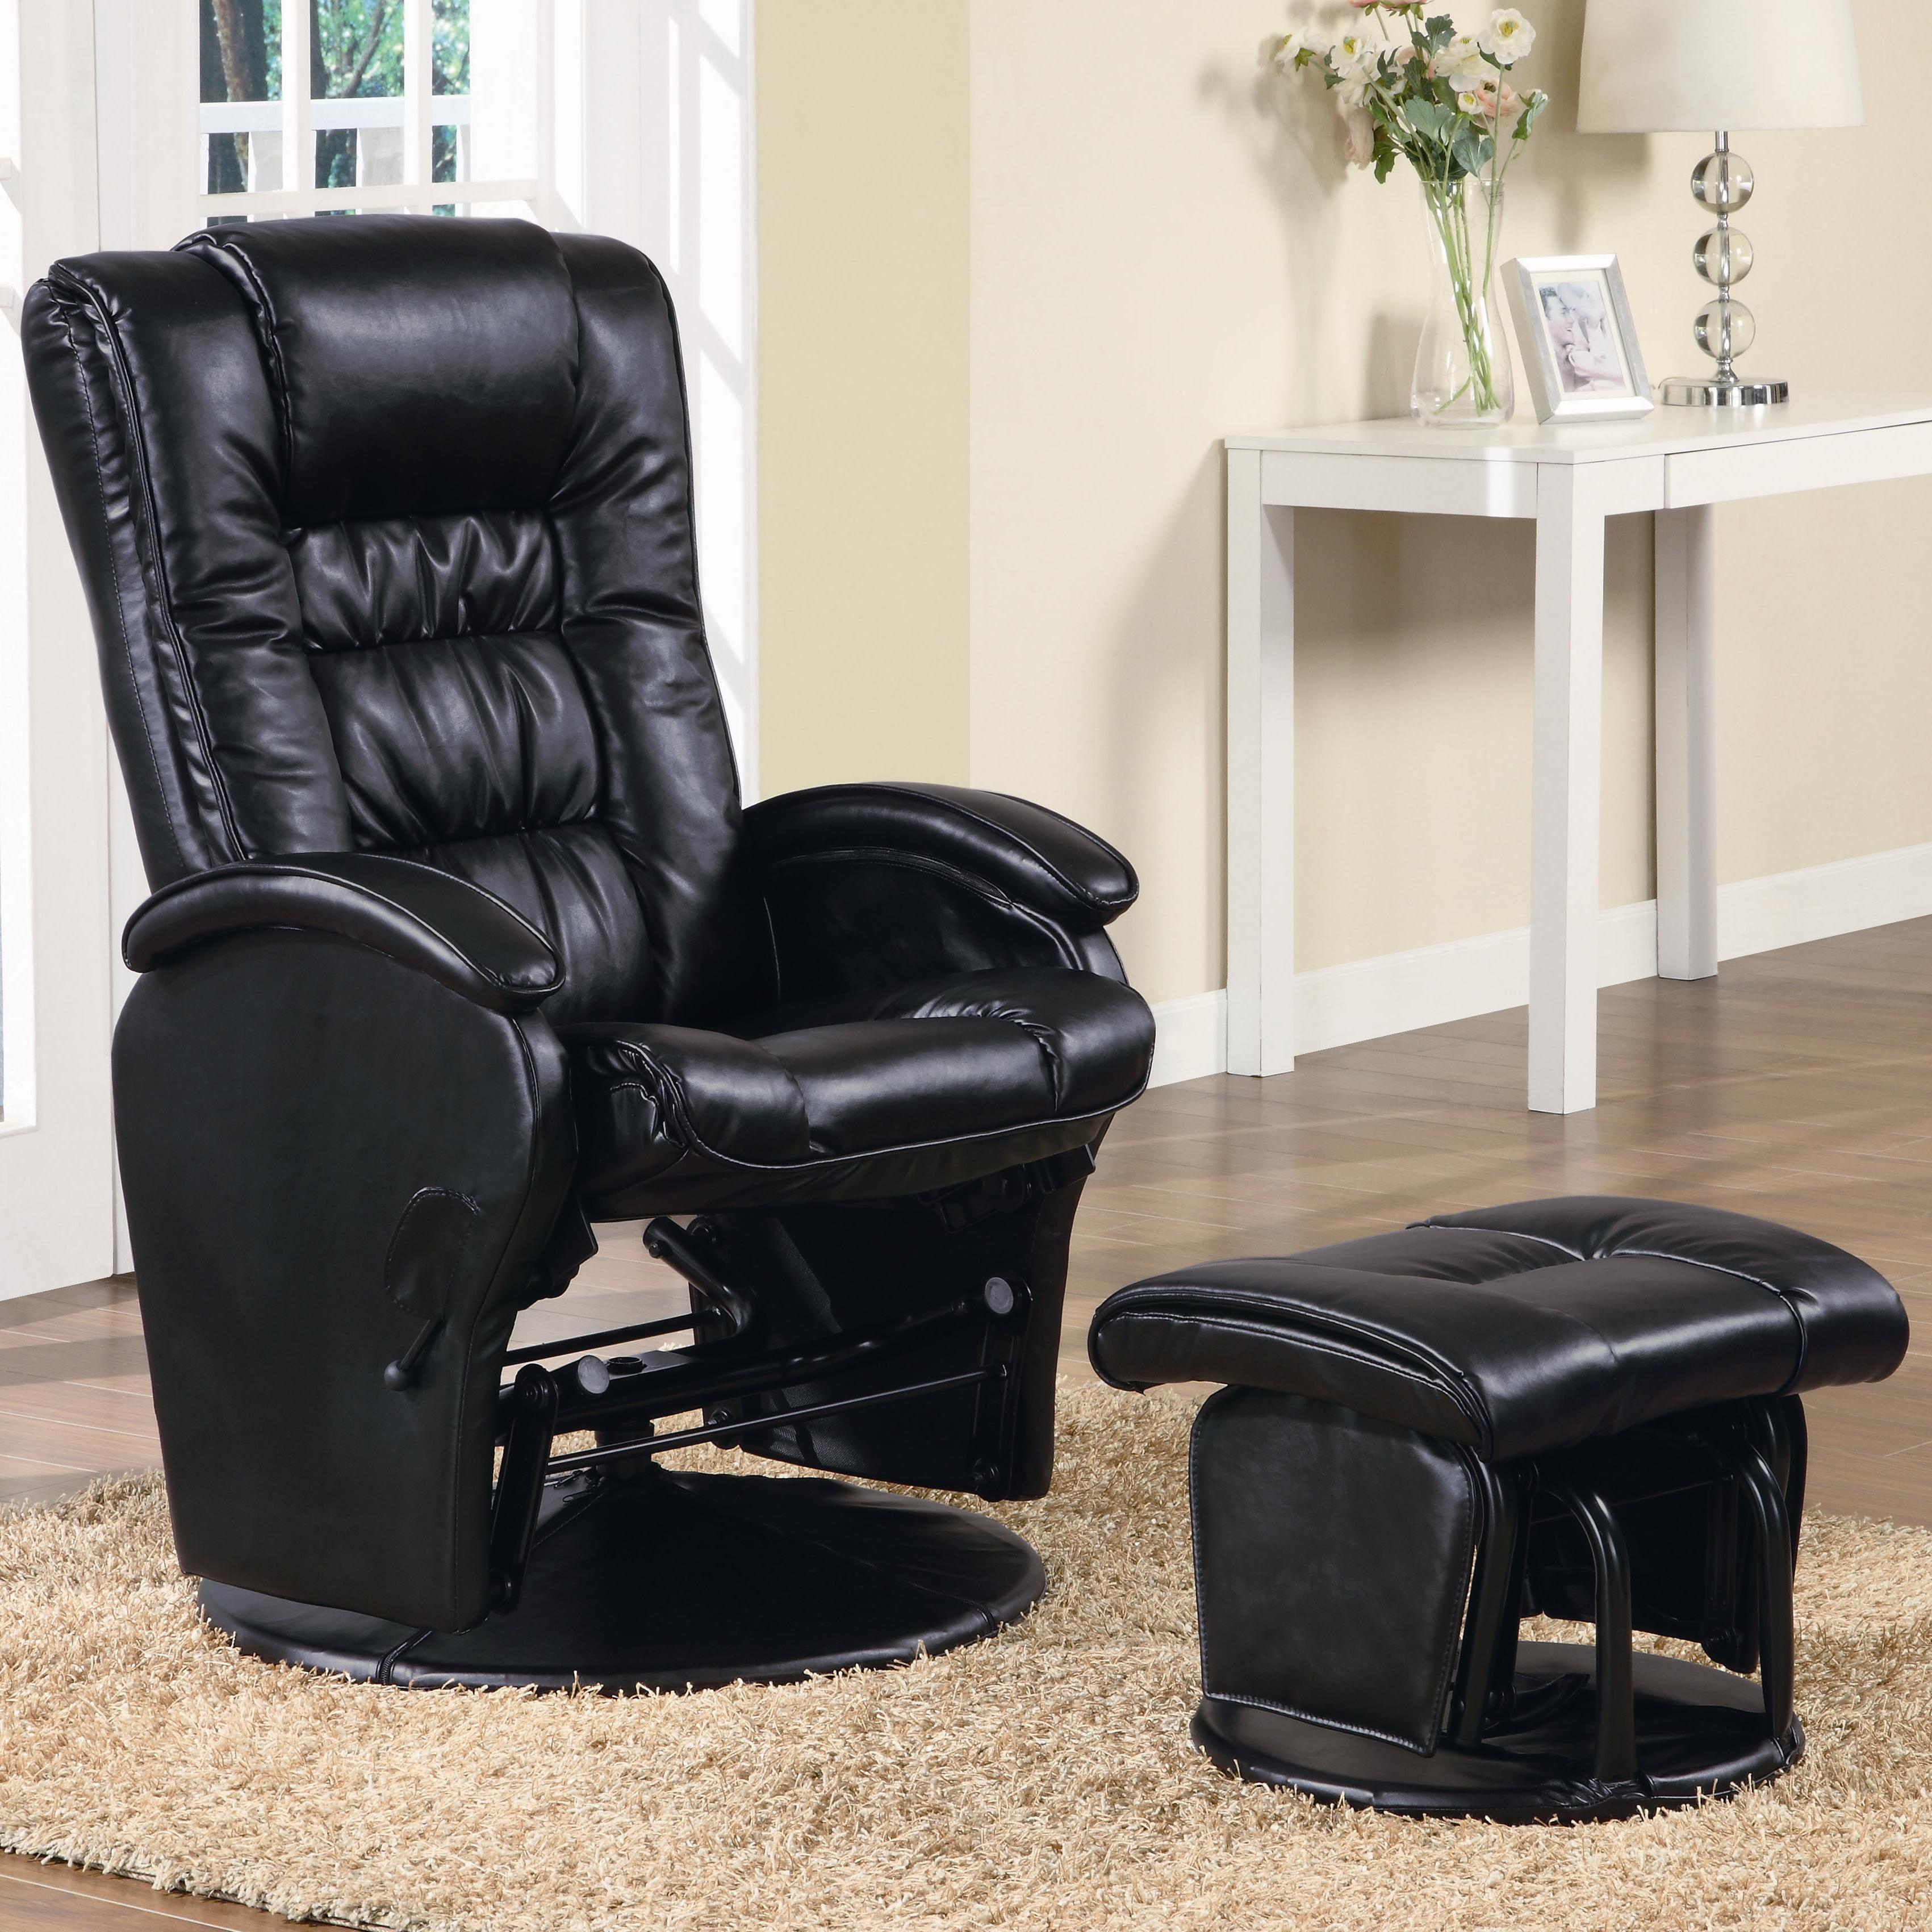 Genial Coaster Company Vinyl Deluxe Glider With Ottoman (Option: Black)